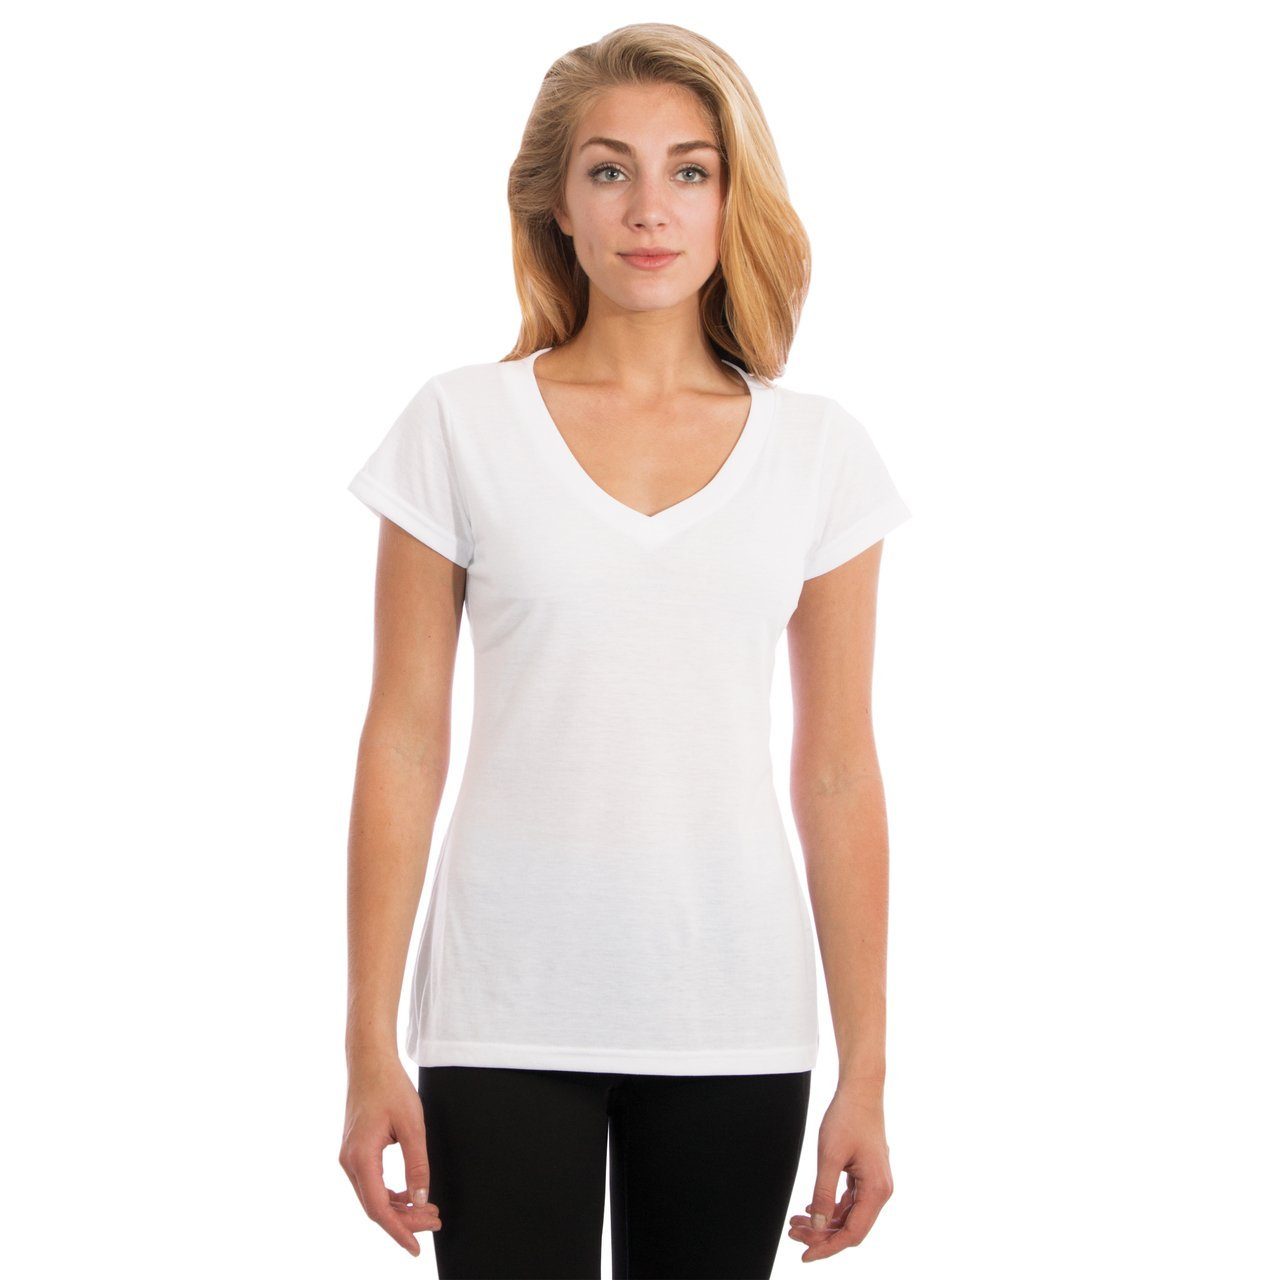 L460WH Ladies Frankly Fashion V-Neck